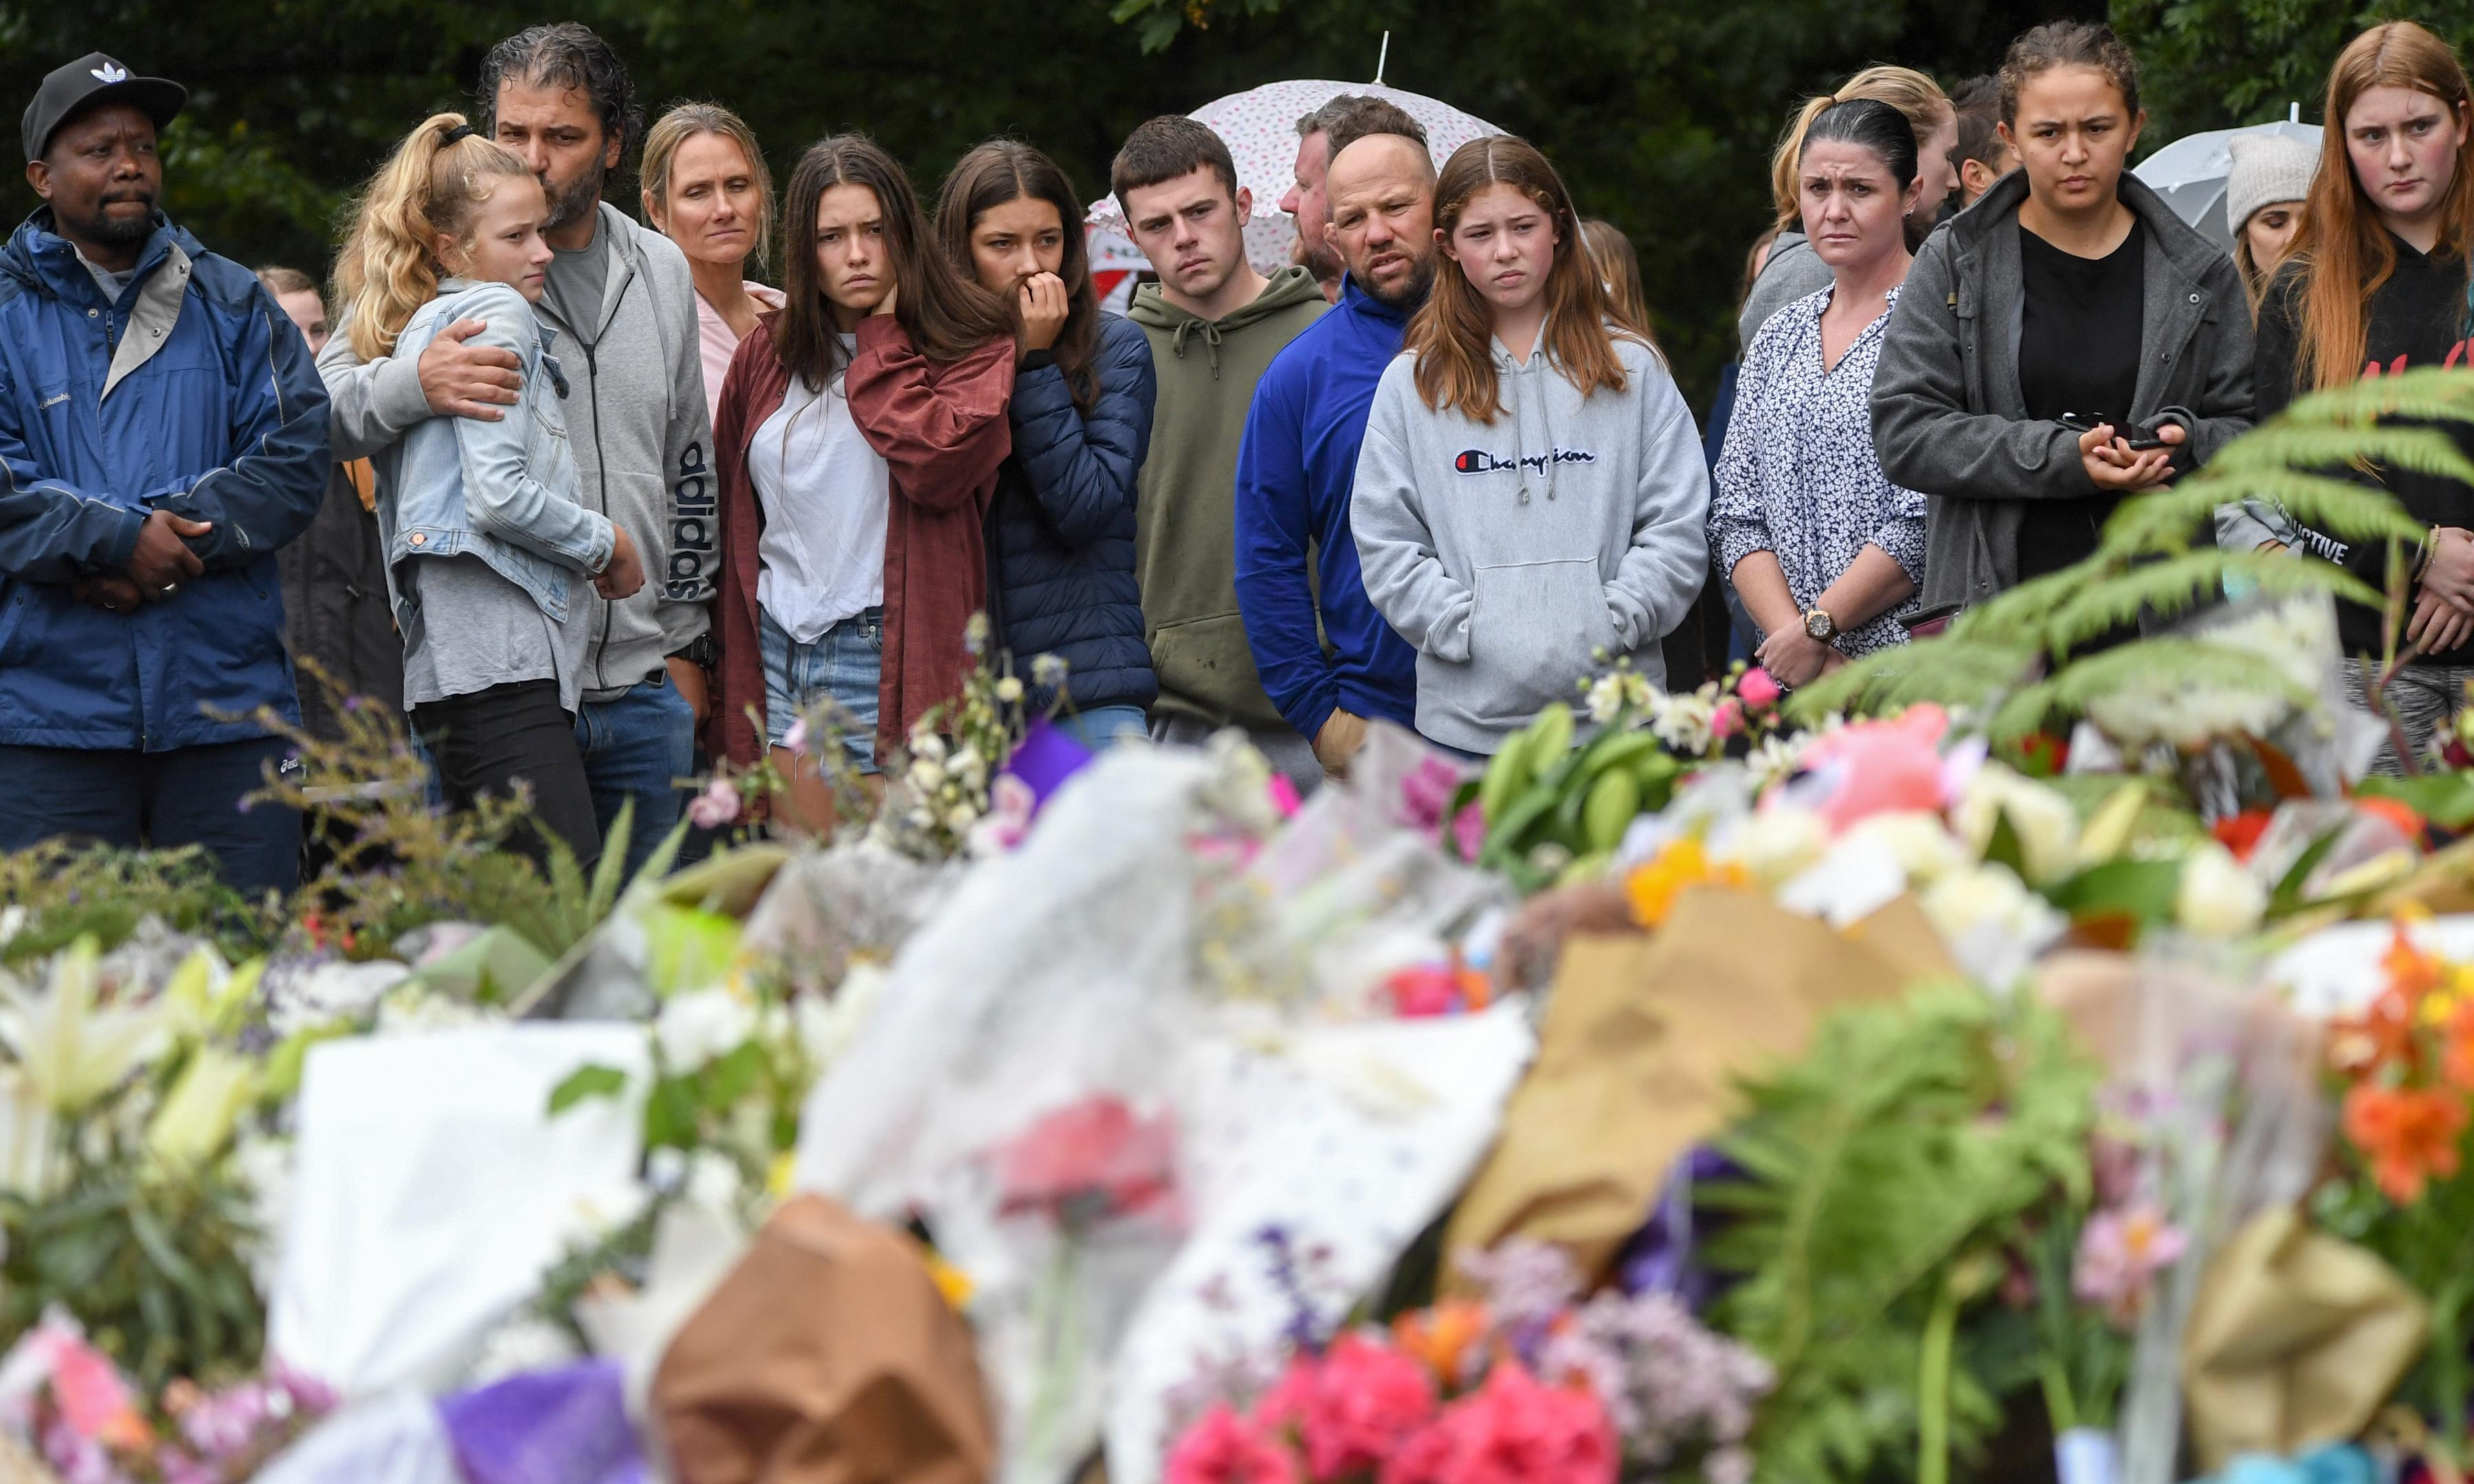 Mark Zuckerberg, four days on, your silence on Christchurch is deafening